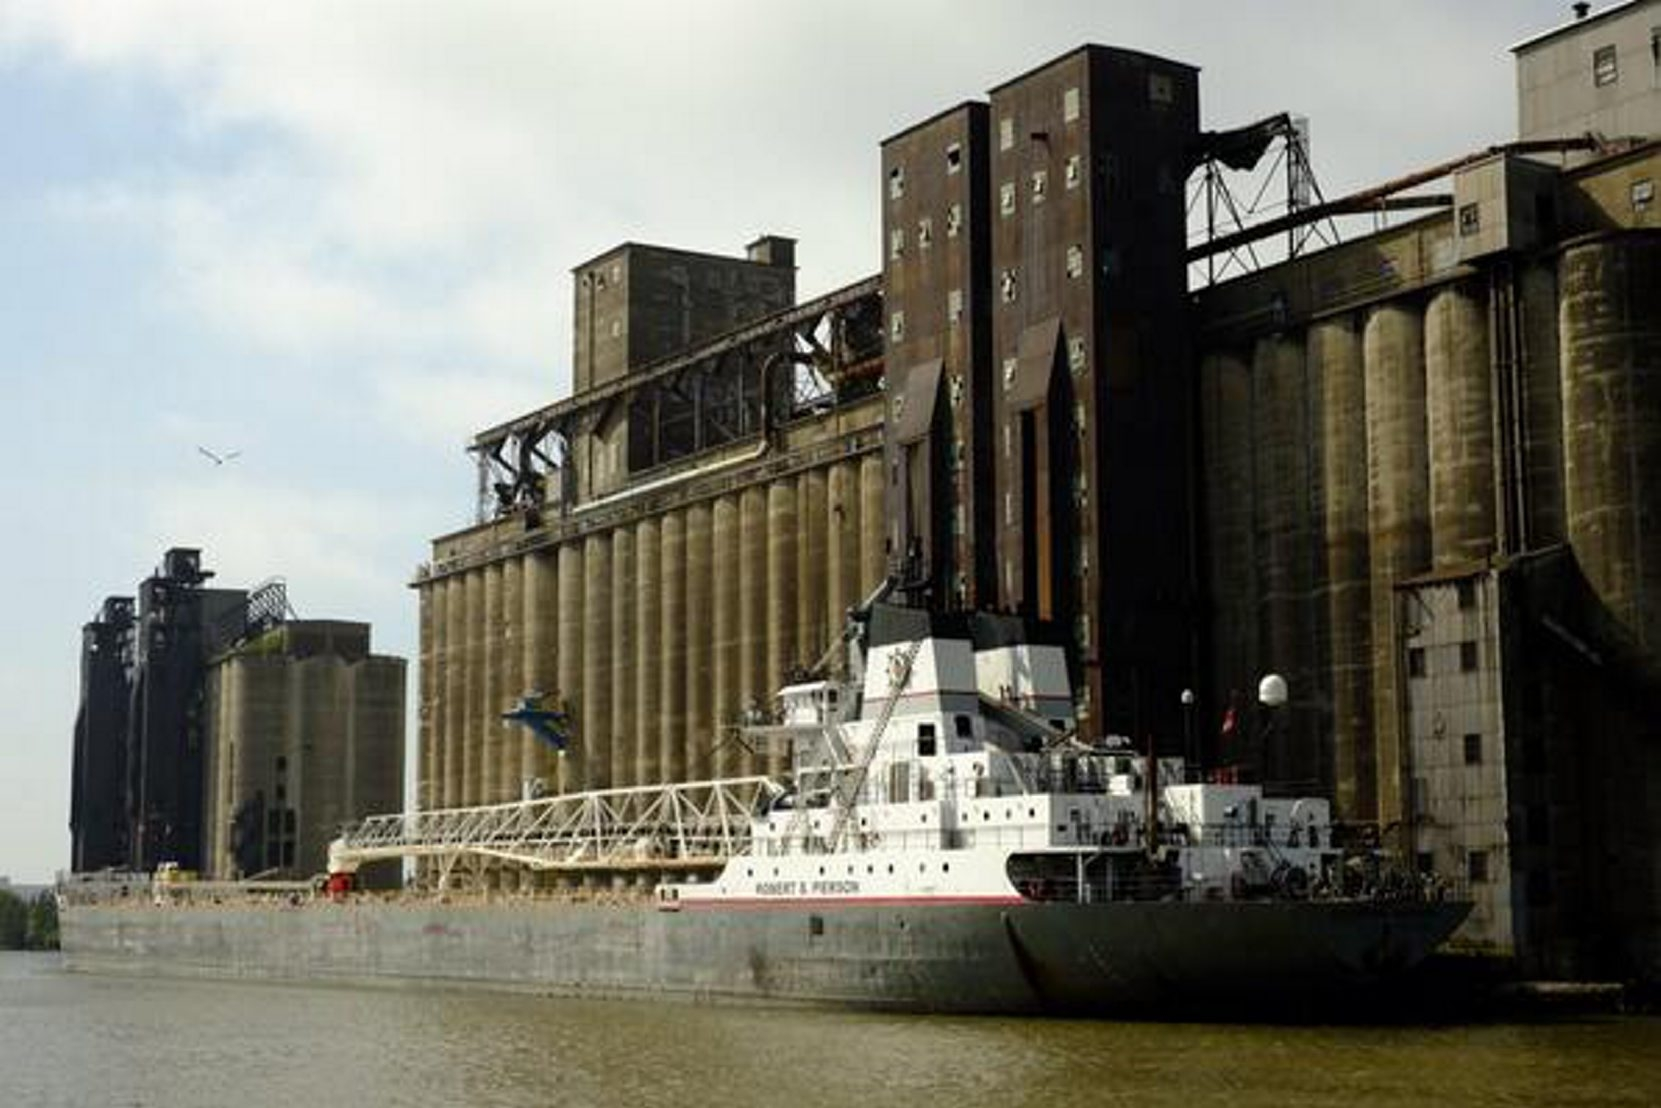 The freighter Robert S. Pierson was able to deliver its load of grain today.